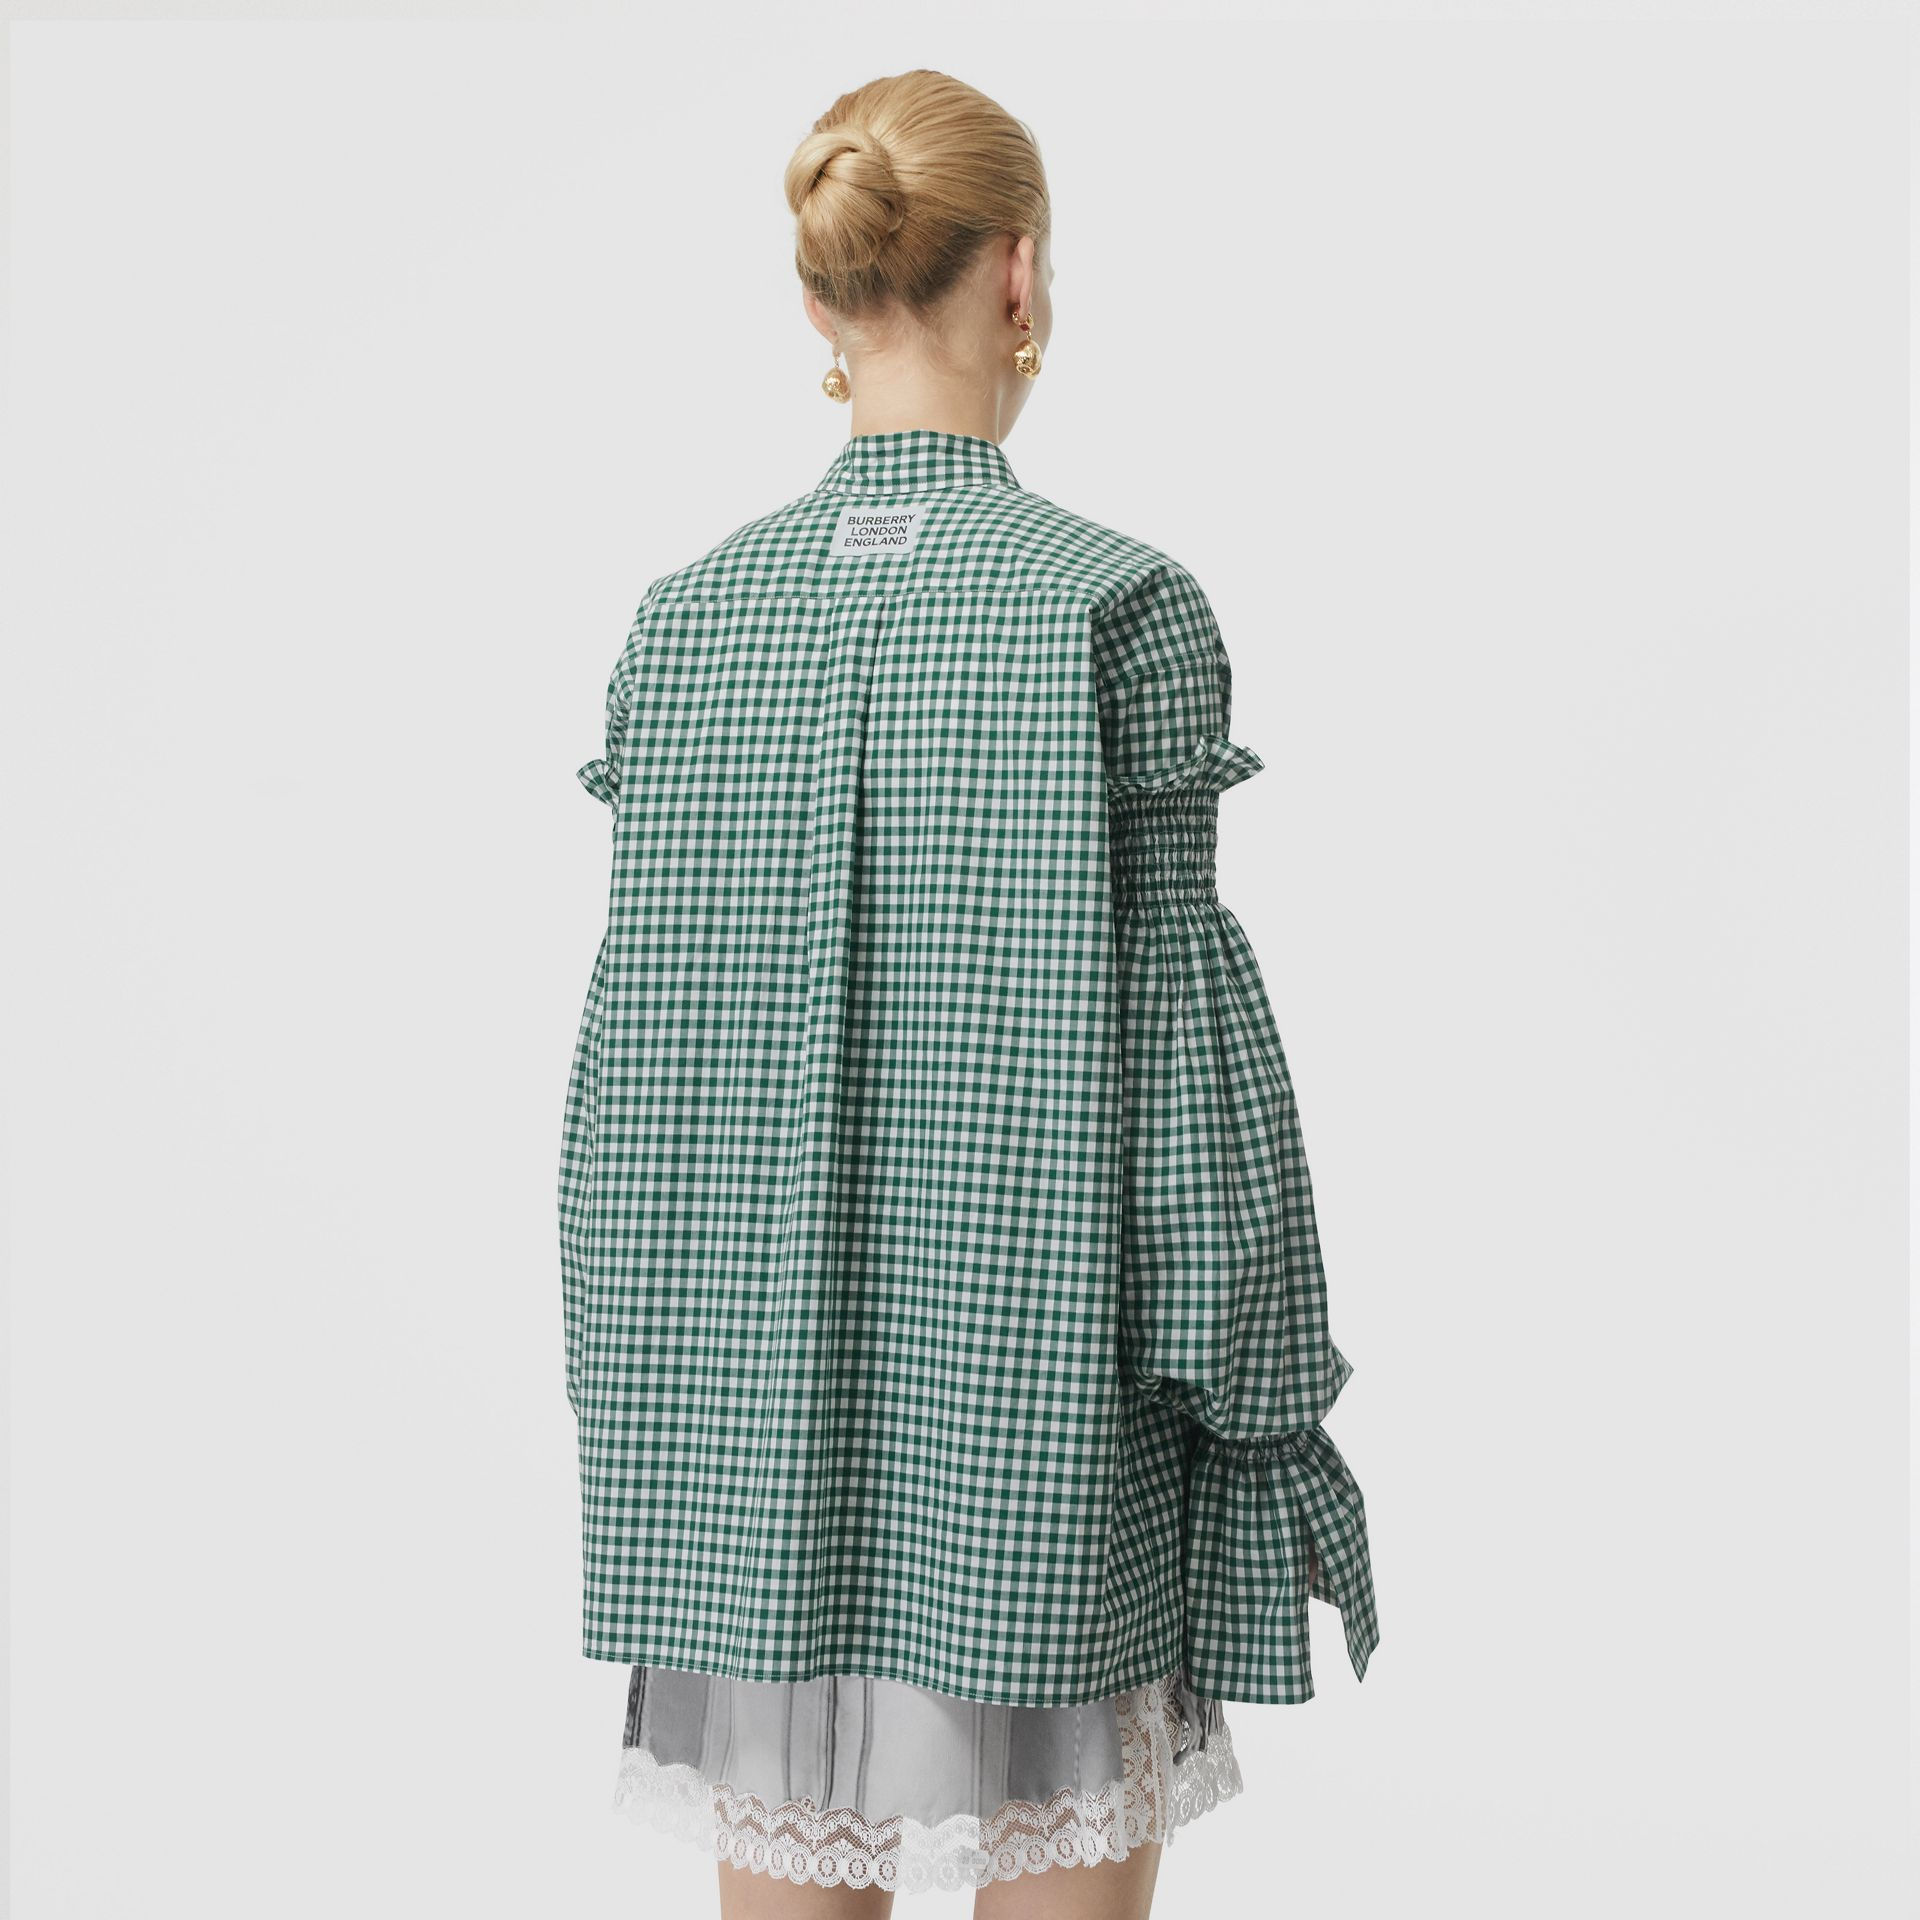 Gathered Sleeve Gingham Cotton Shirt in White/green - Women | Burberry - gallery image 2